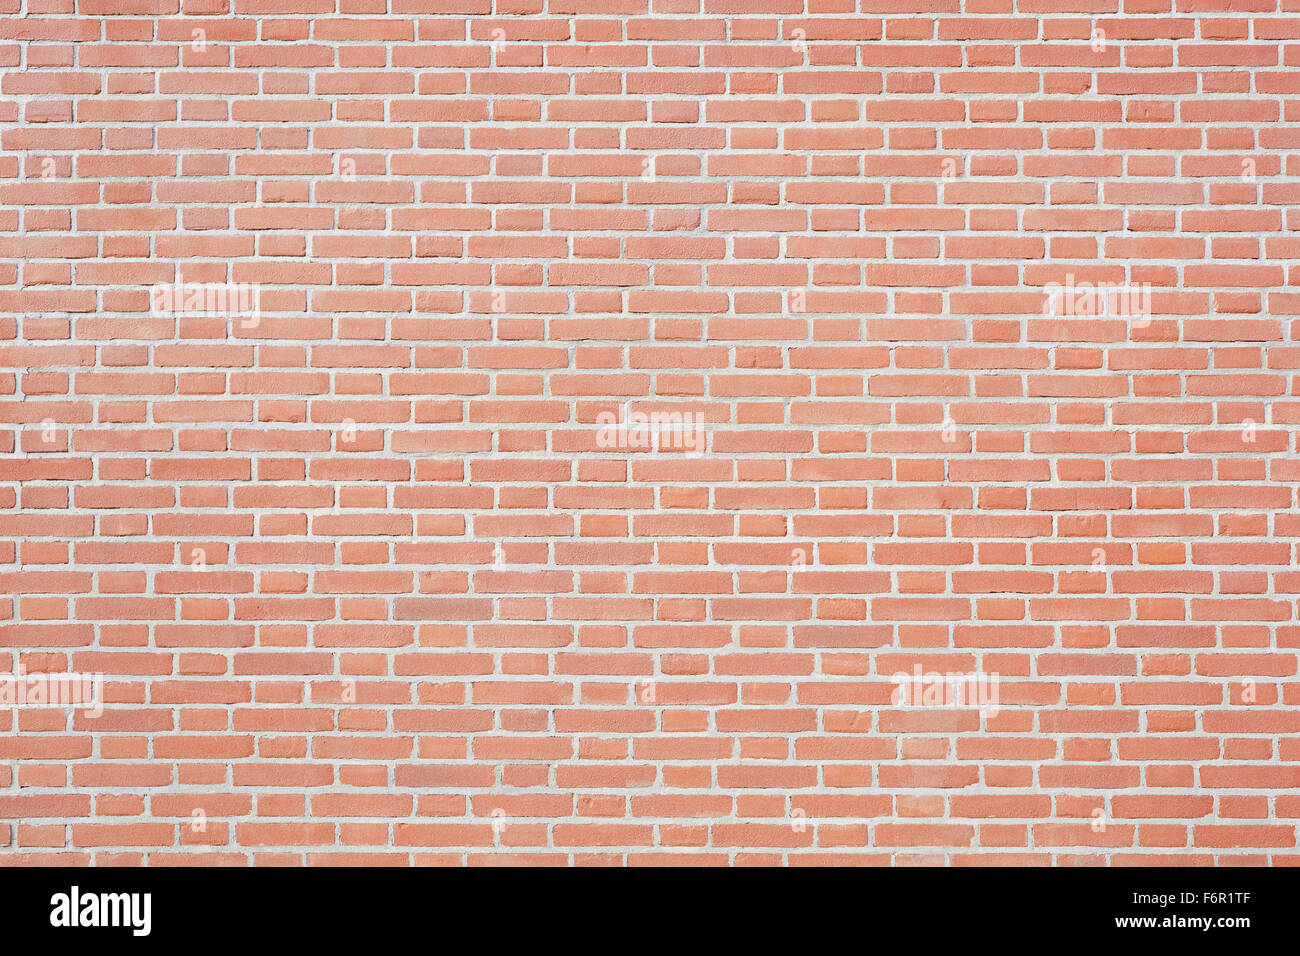 New red bricks wall texture background - Stock Image